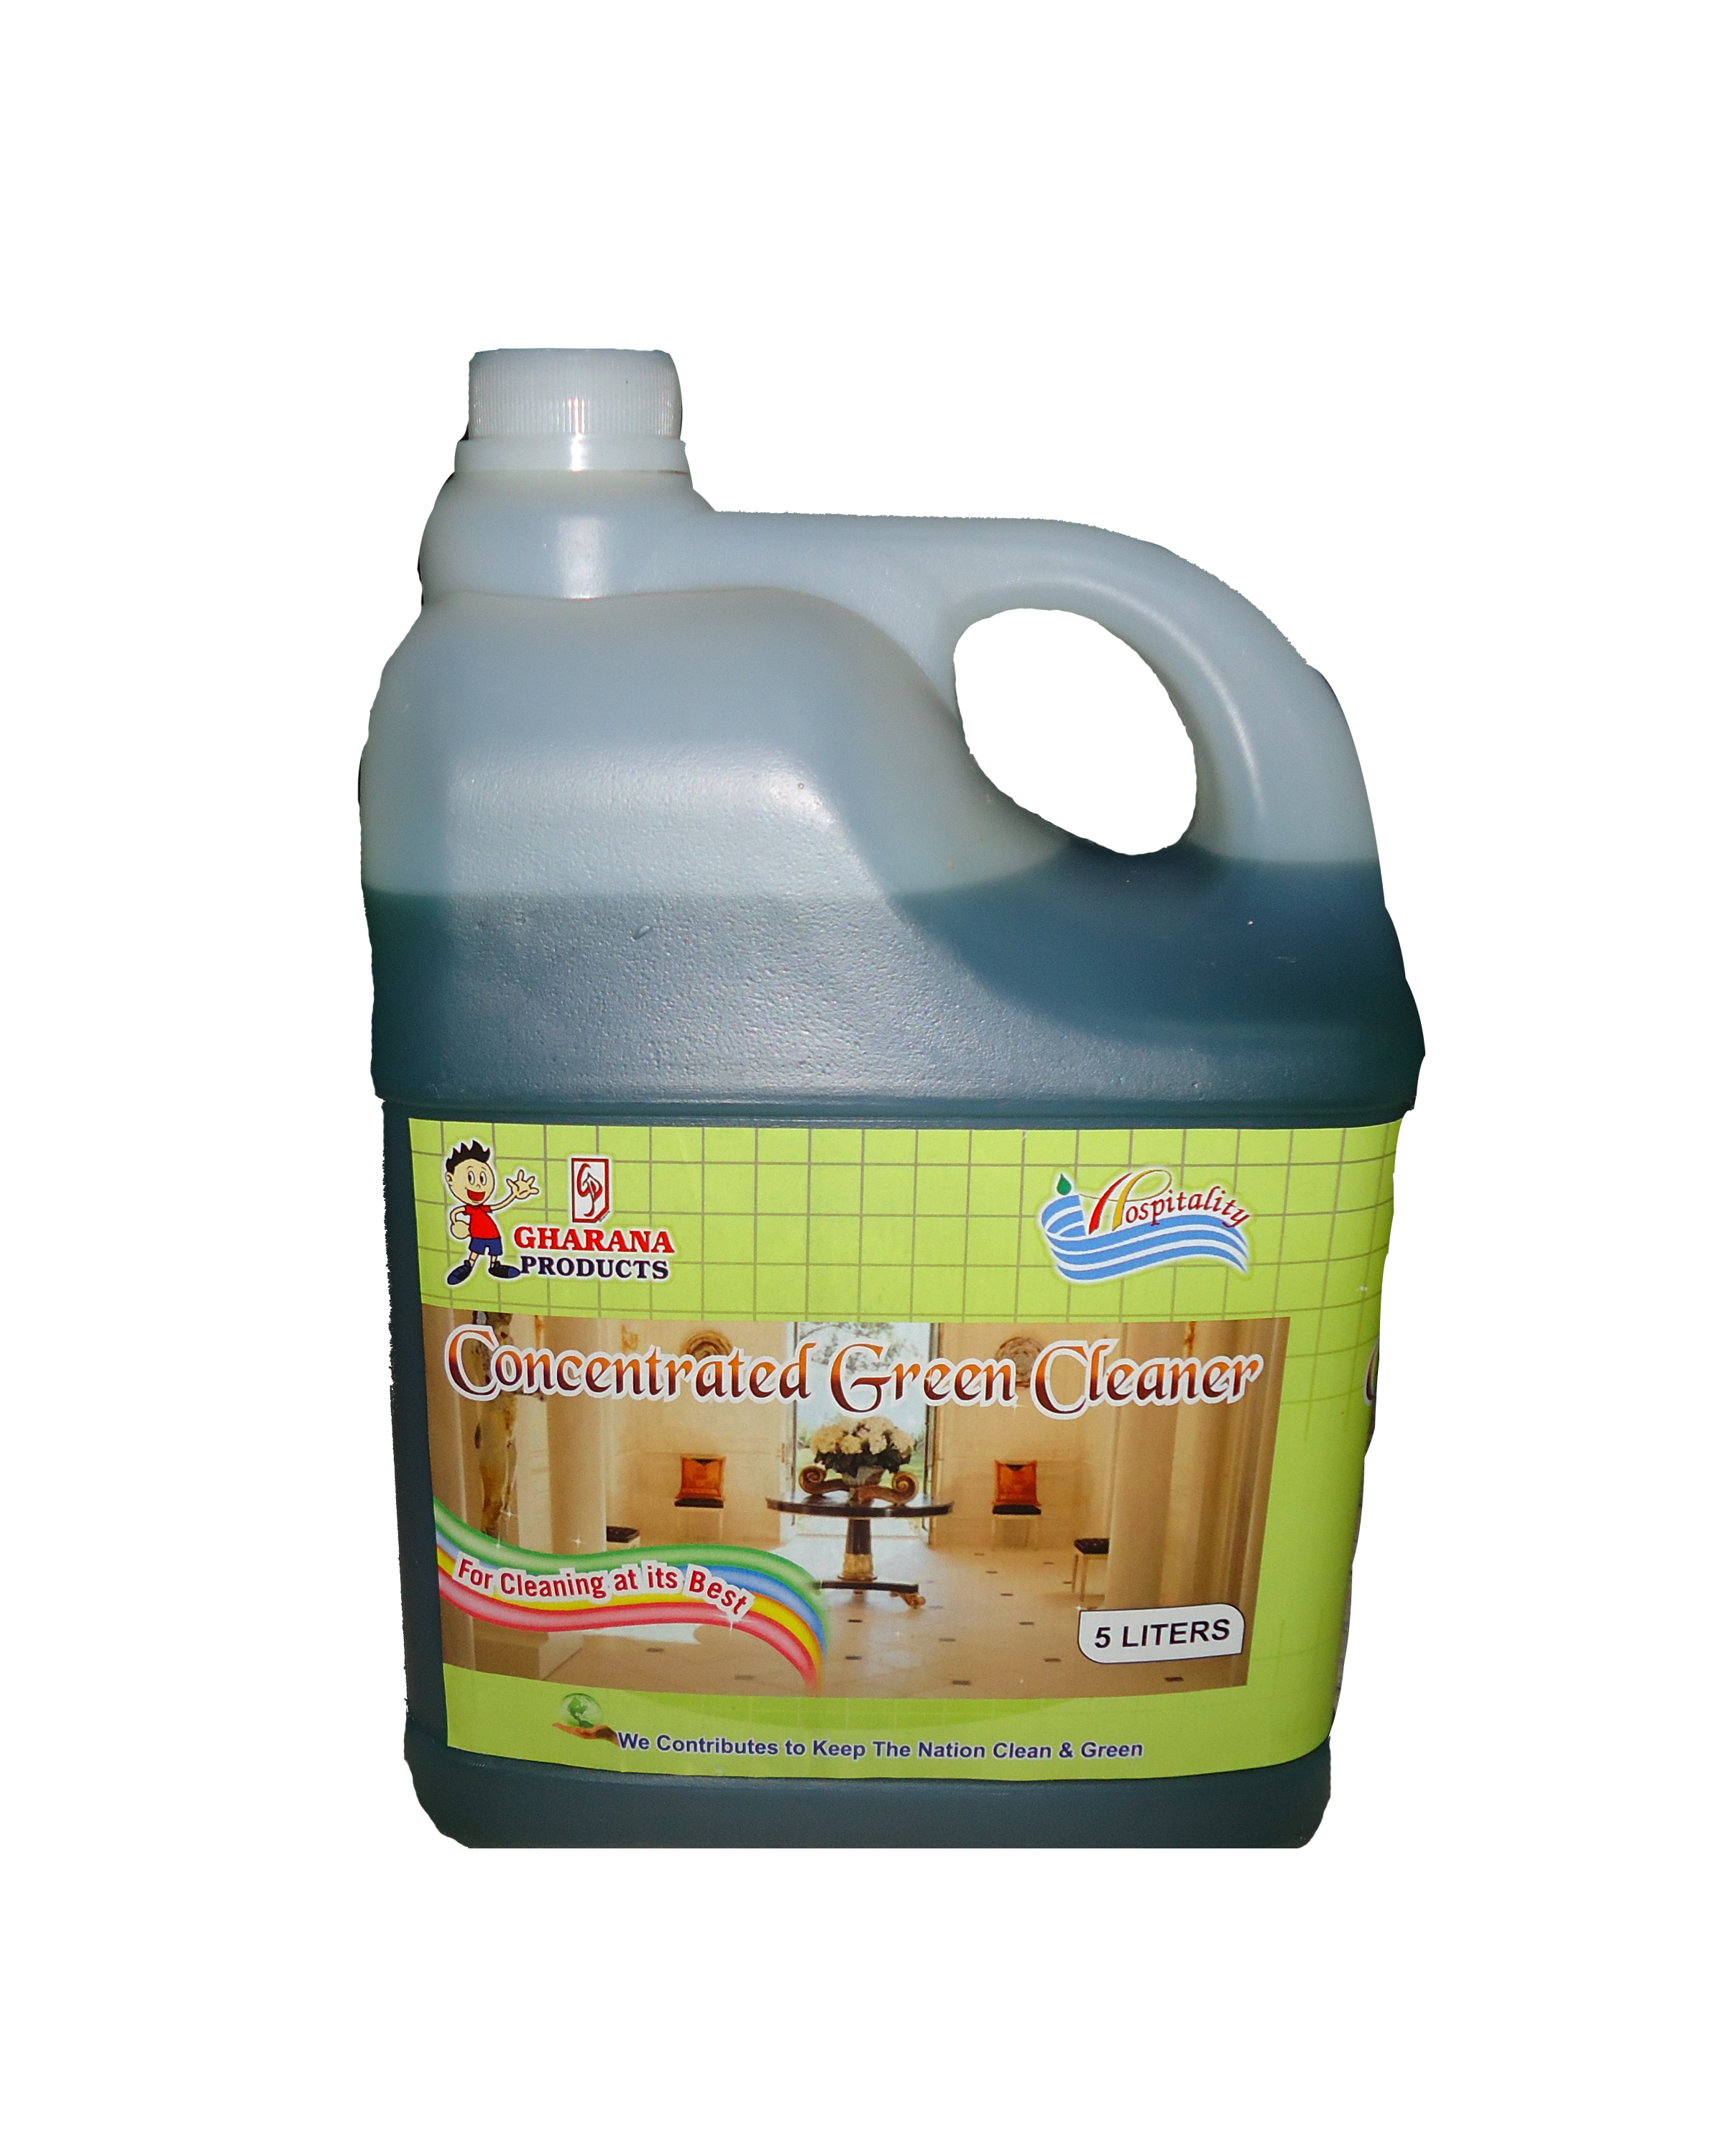 X-14-Green cleaner  5 liter packing-Hospitality